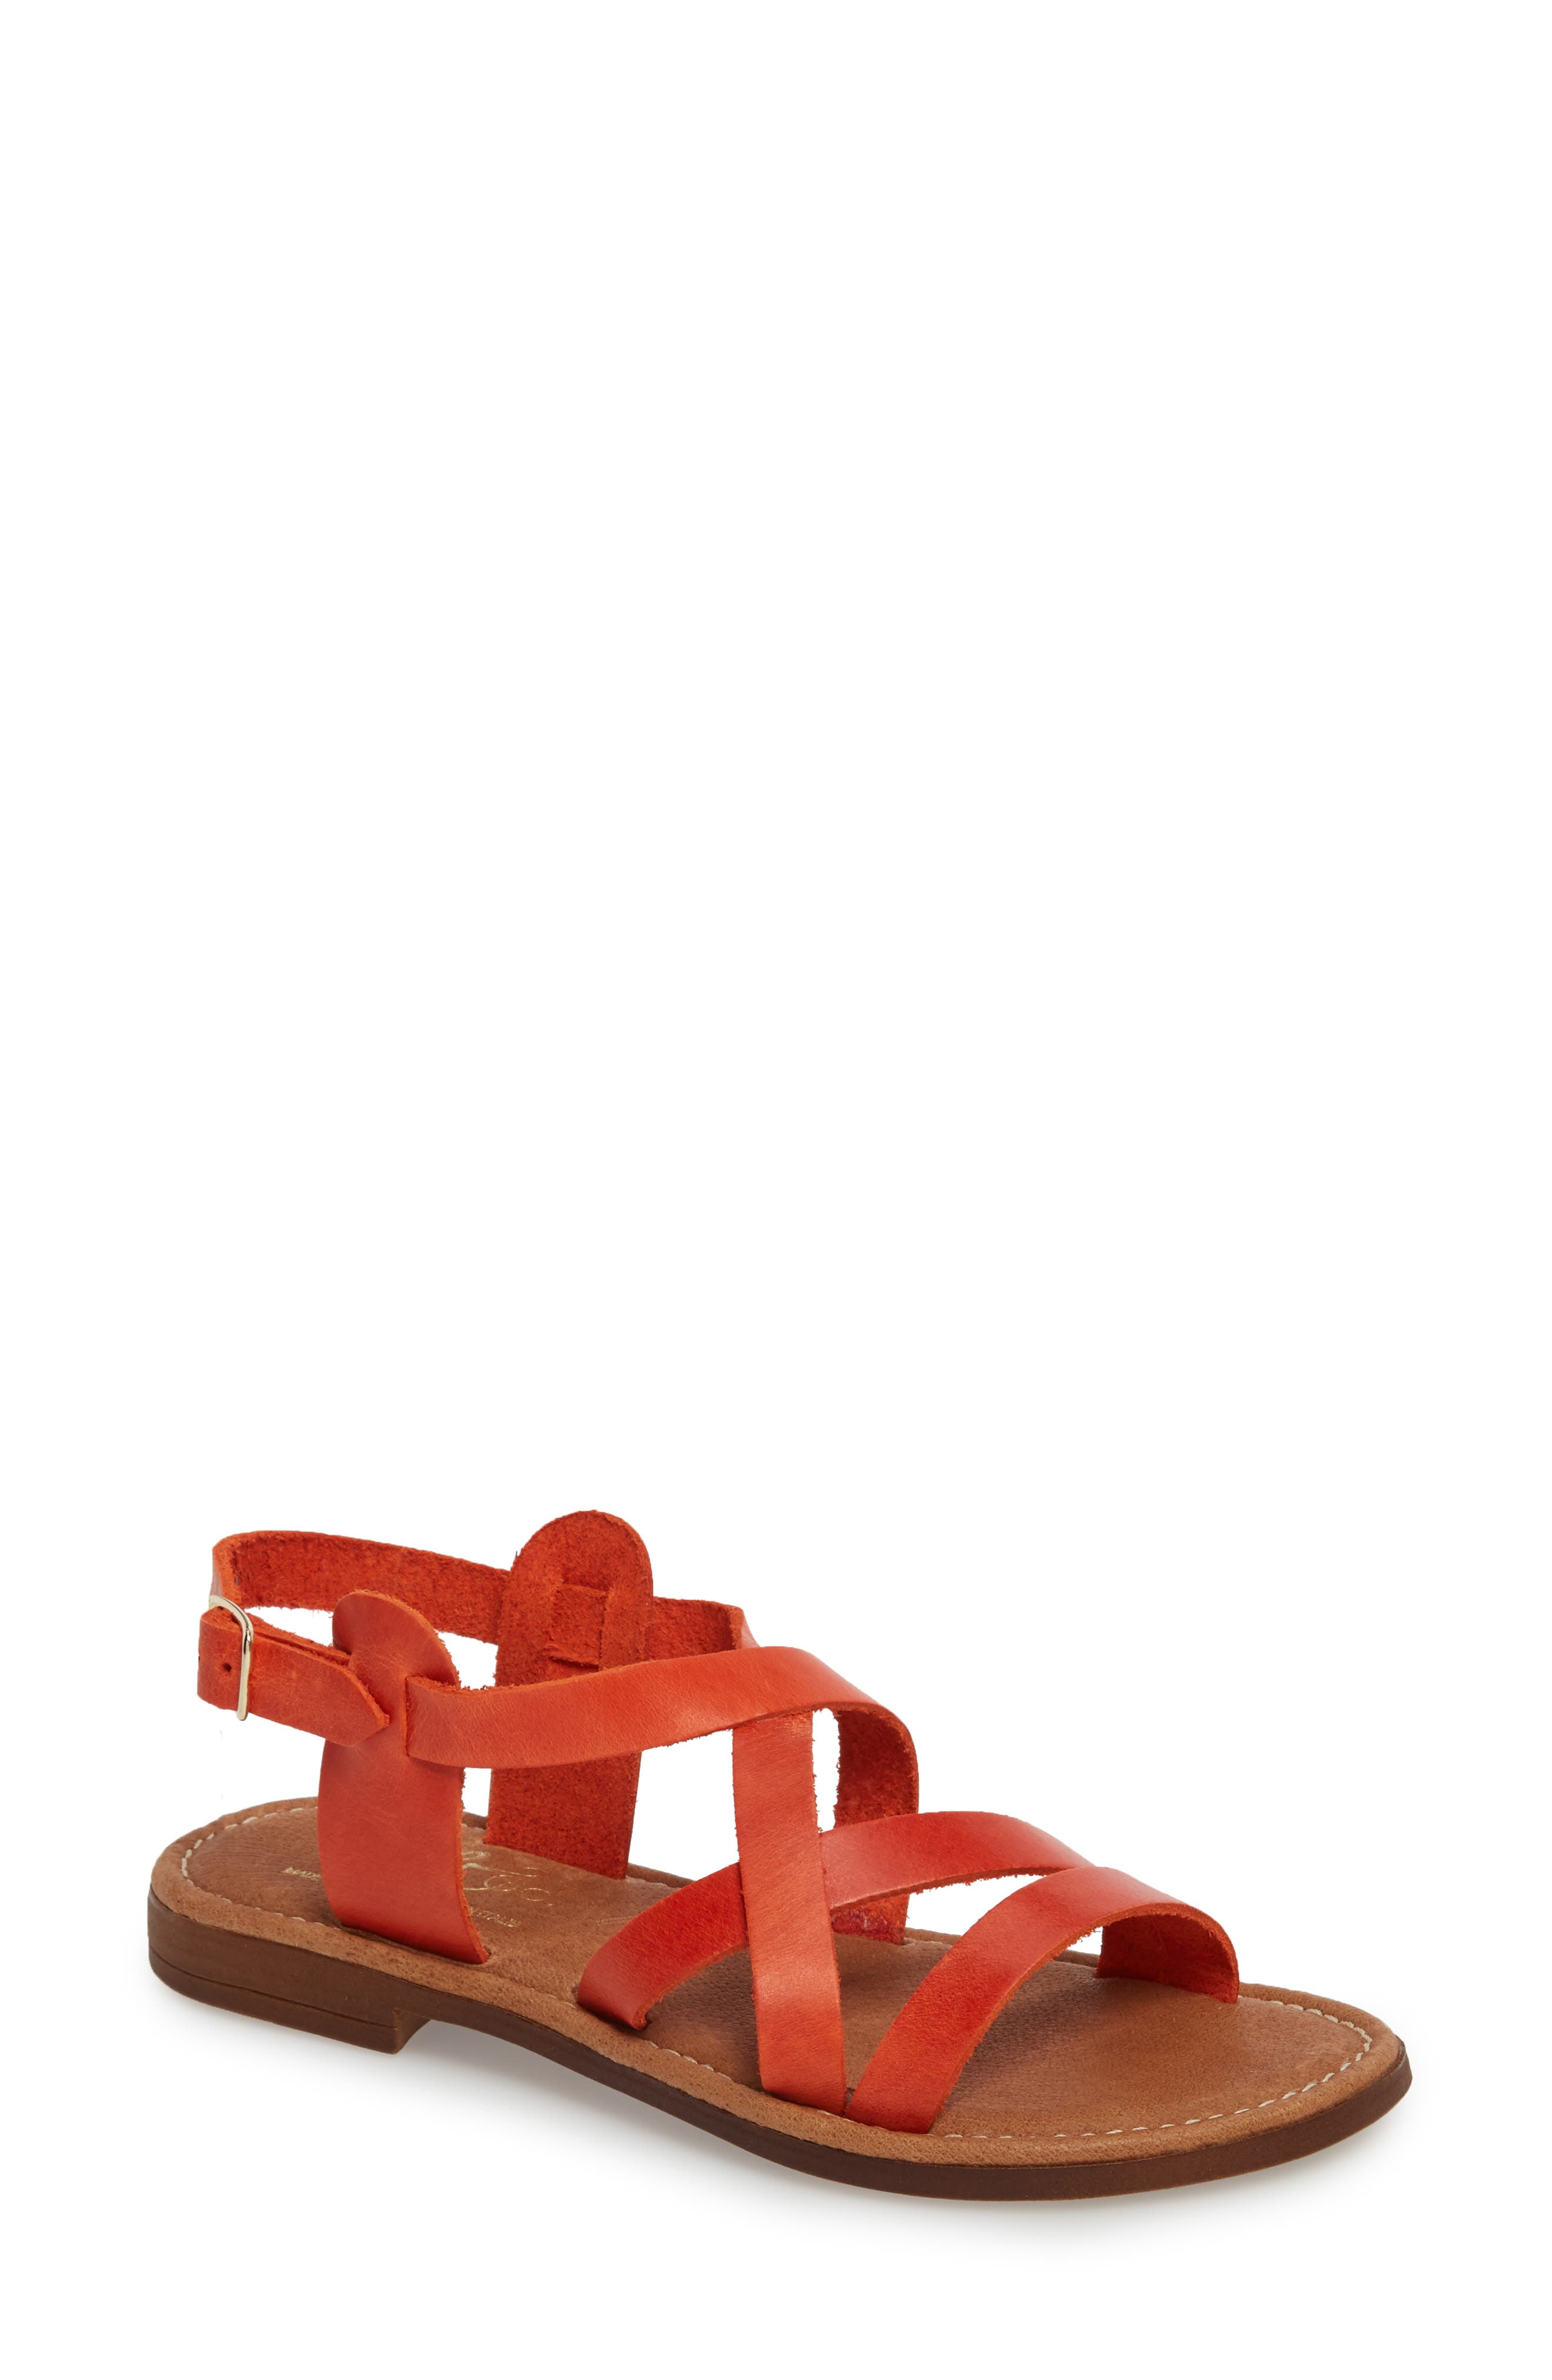 Ionna Sandal,                             Main thumbnail 1, color,                             Tangerine Leather